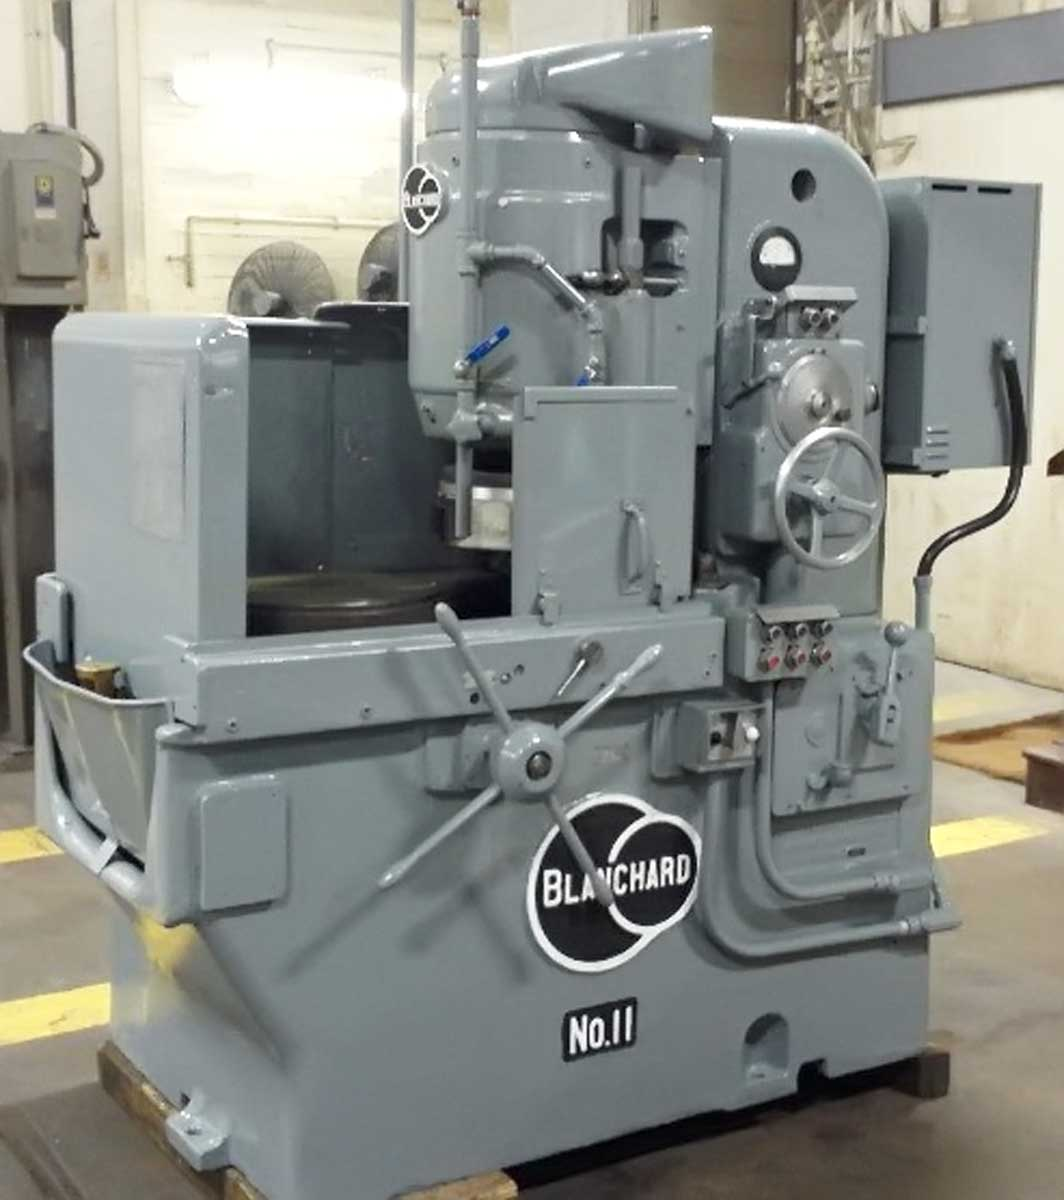 Blanchard #11-16, 16″ Vertical Spindle Rotary Surface Grinder